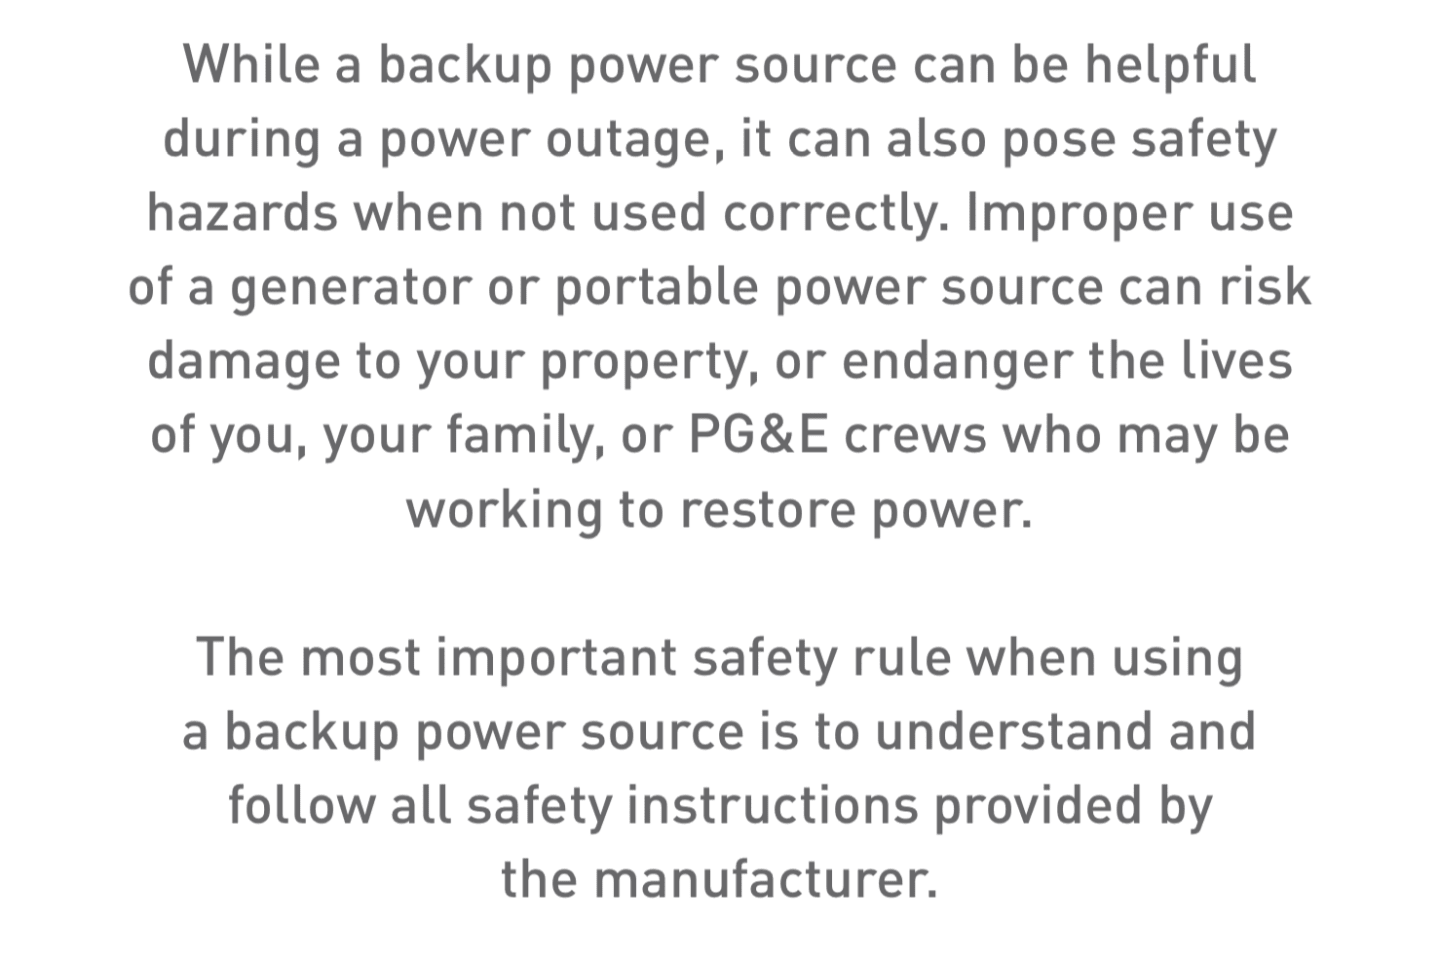 Text block about backup power safety